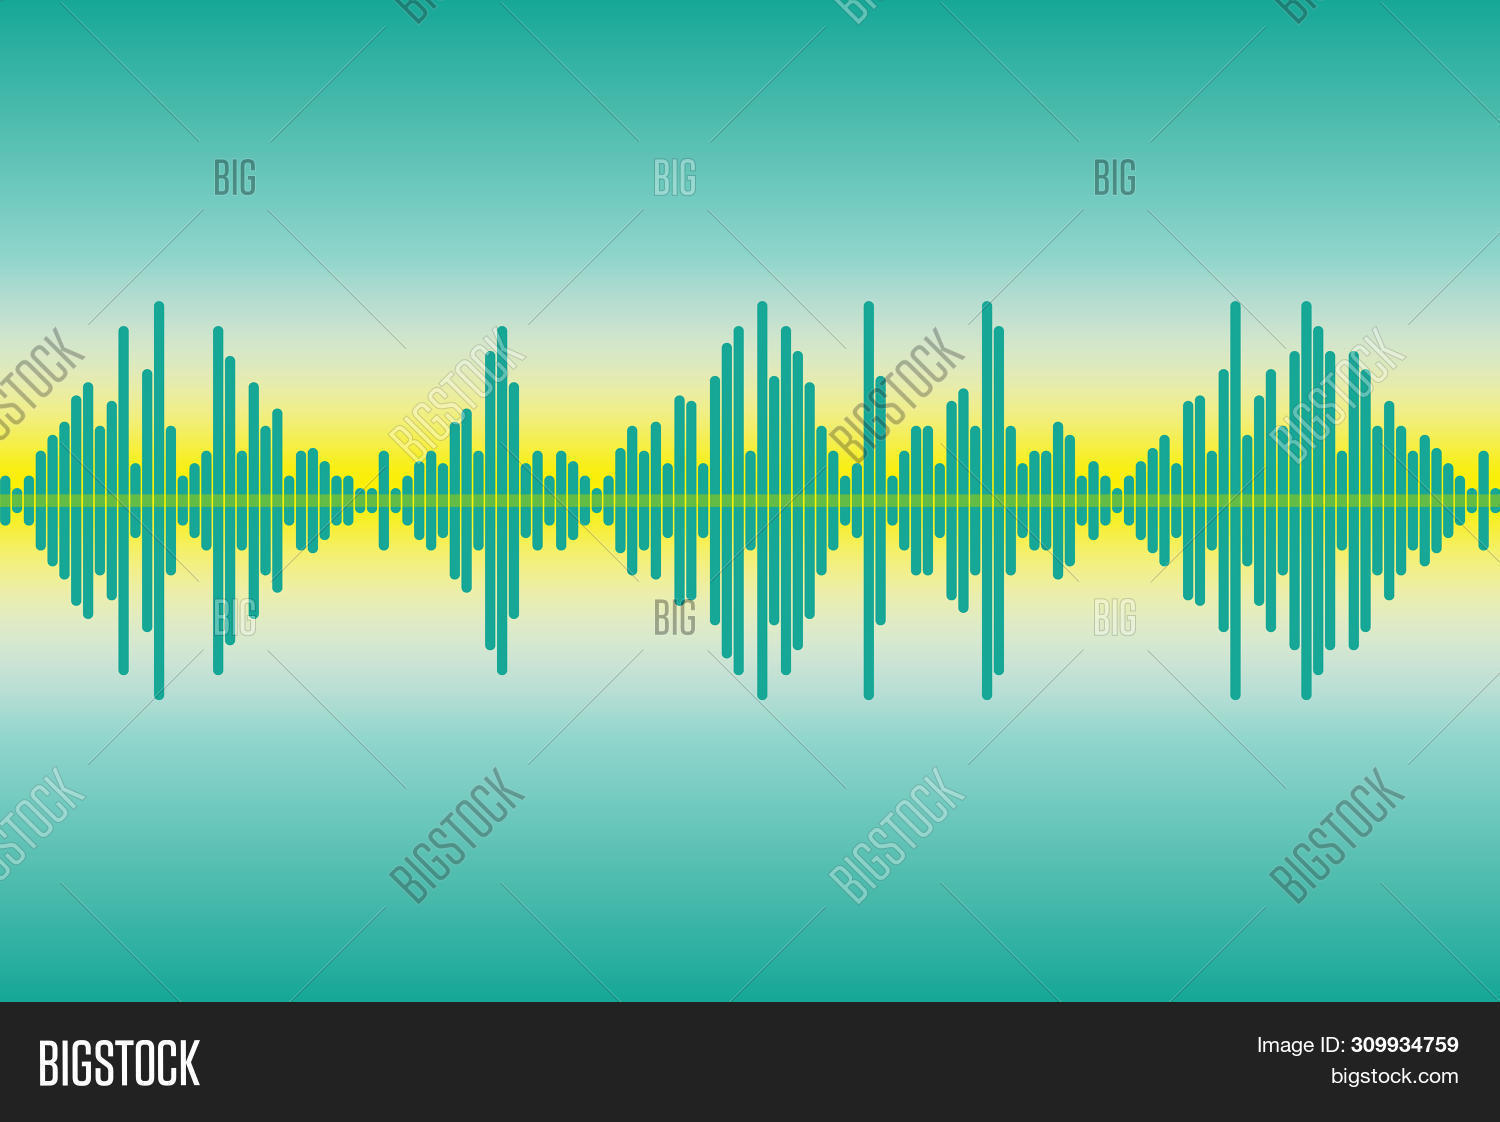 Turquoise Music Player Image & Photo (Free Trial) | Bigstock